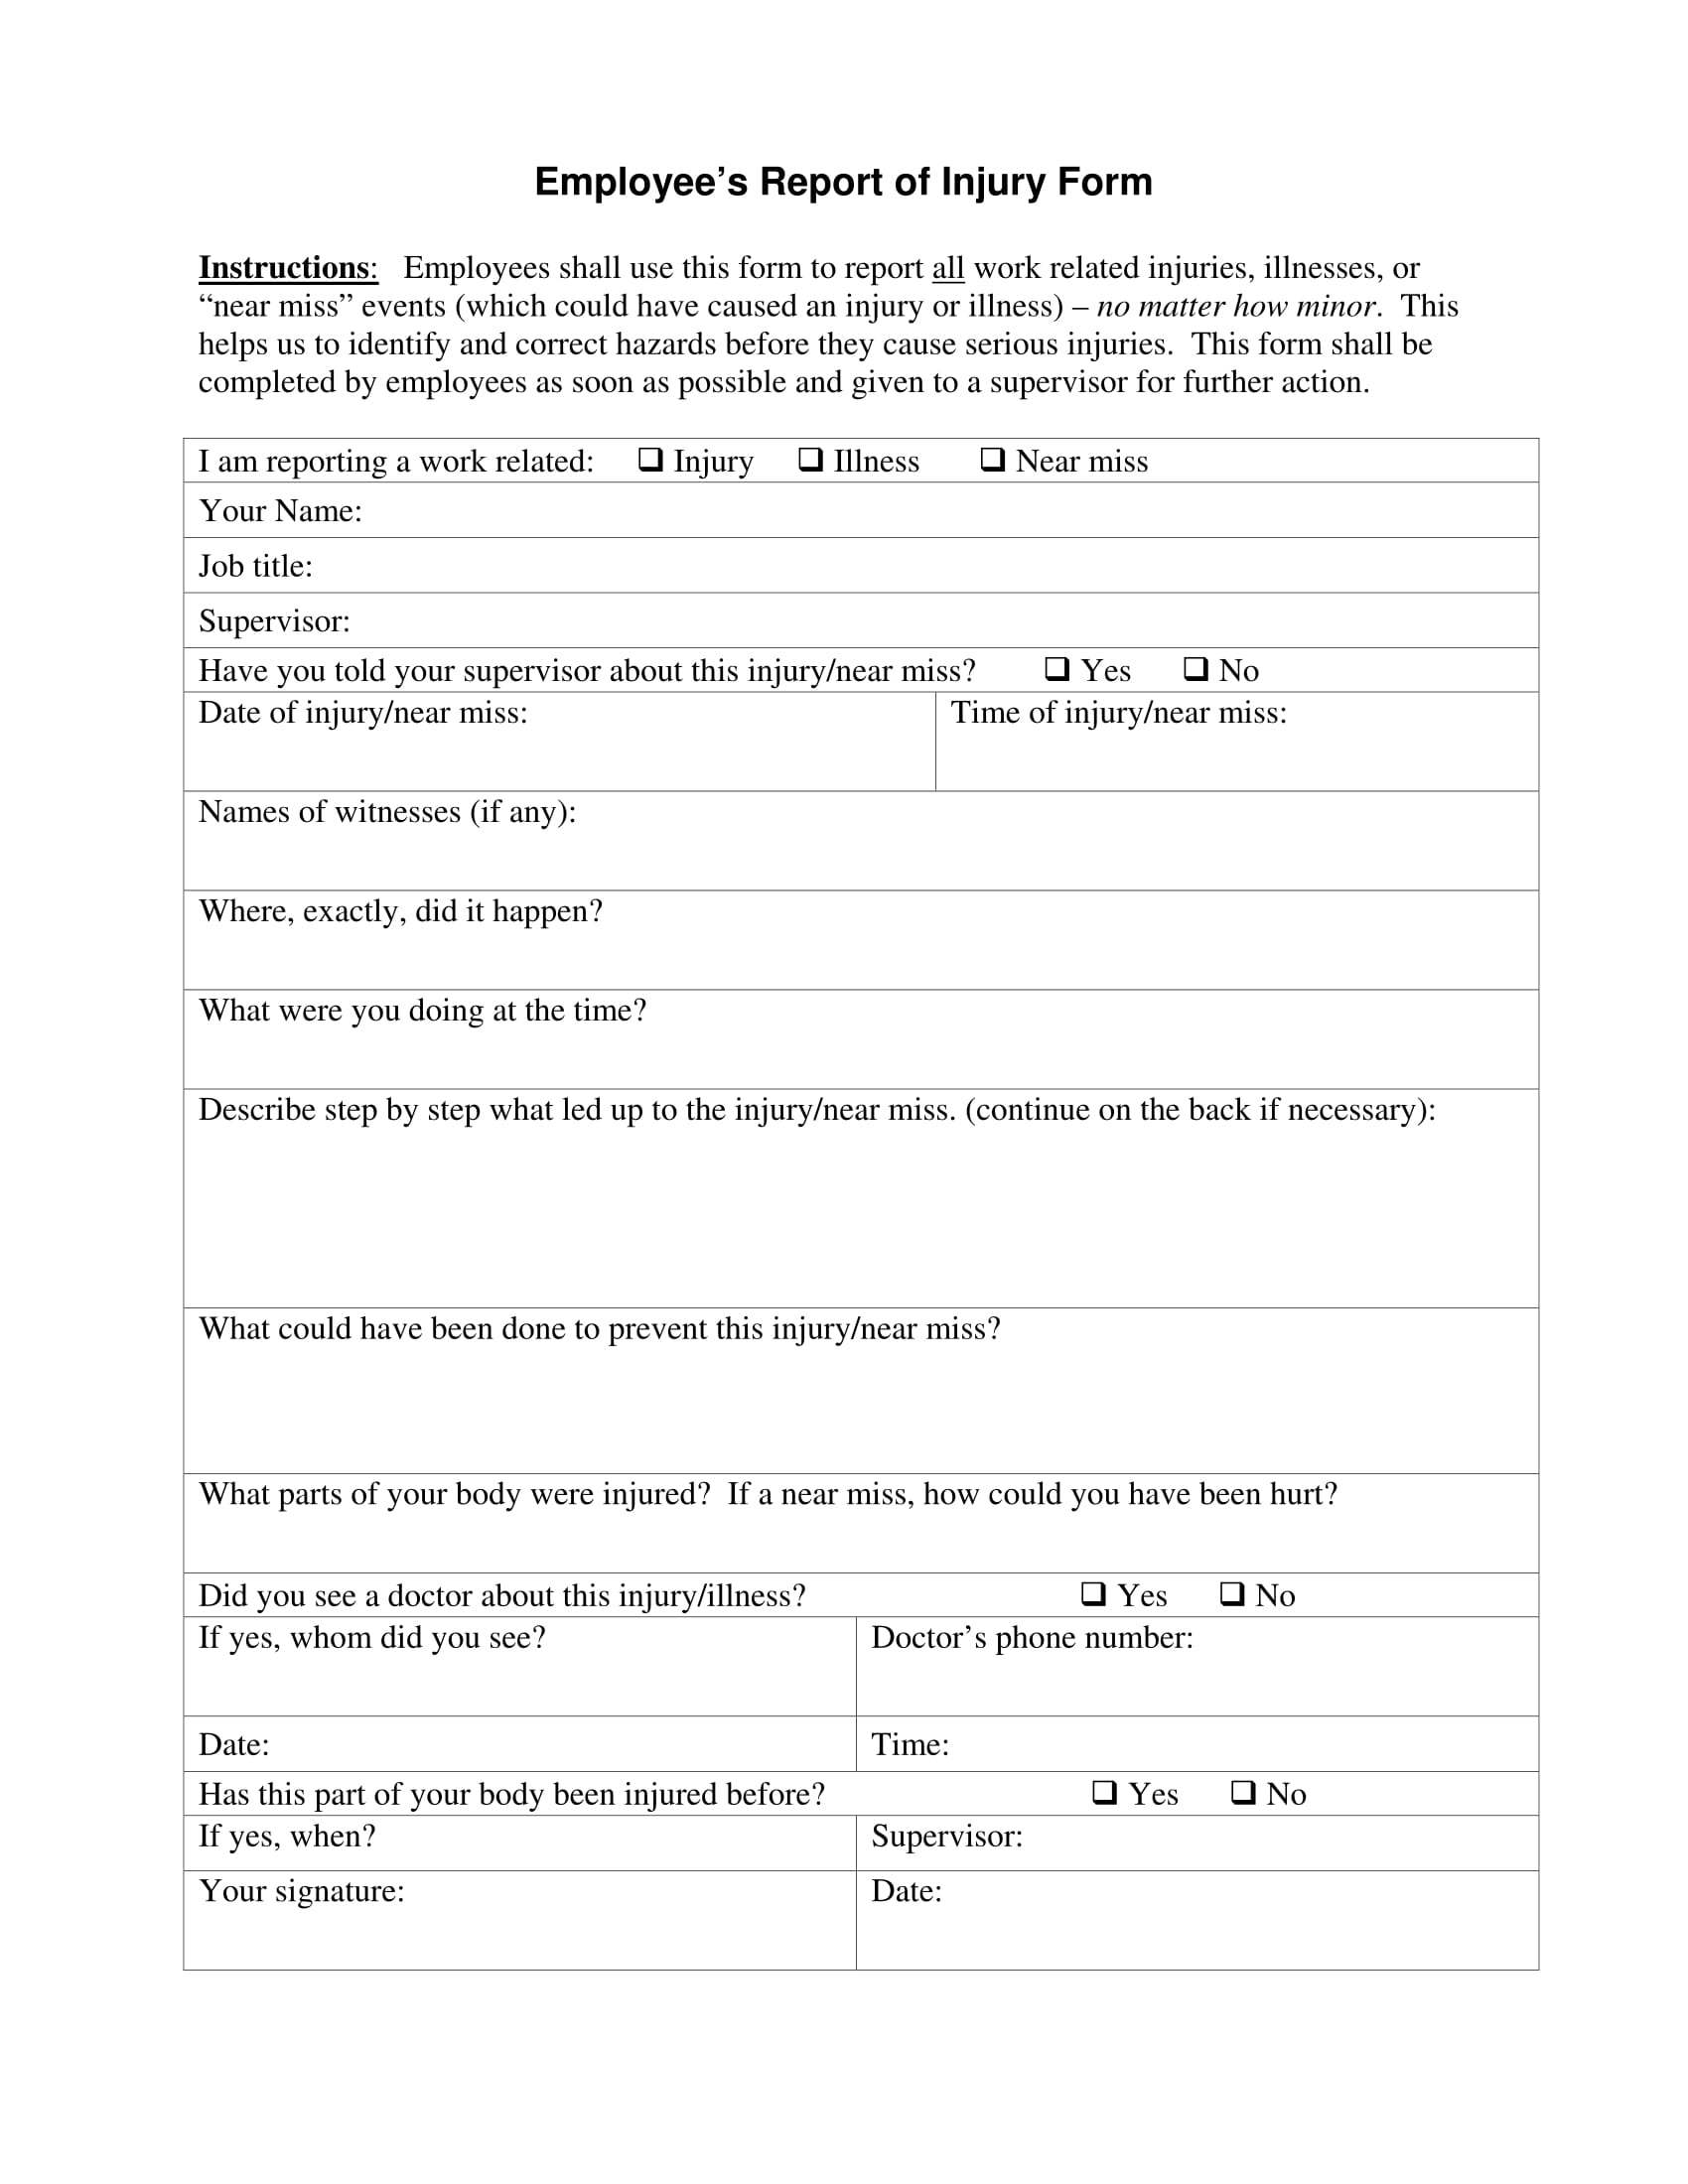 employee's report of injury form 1